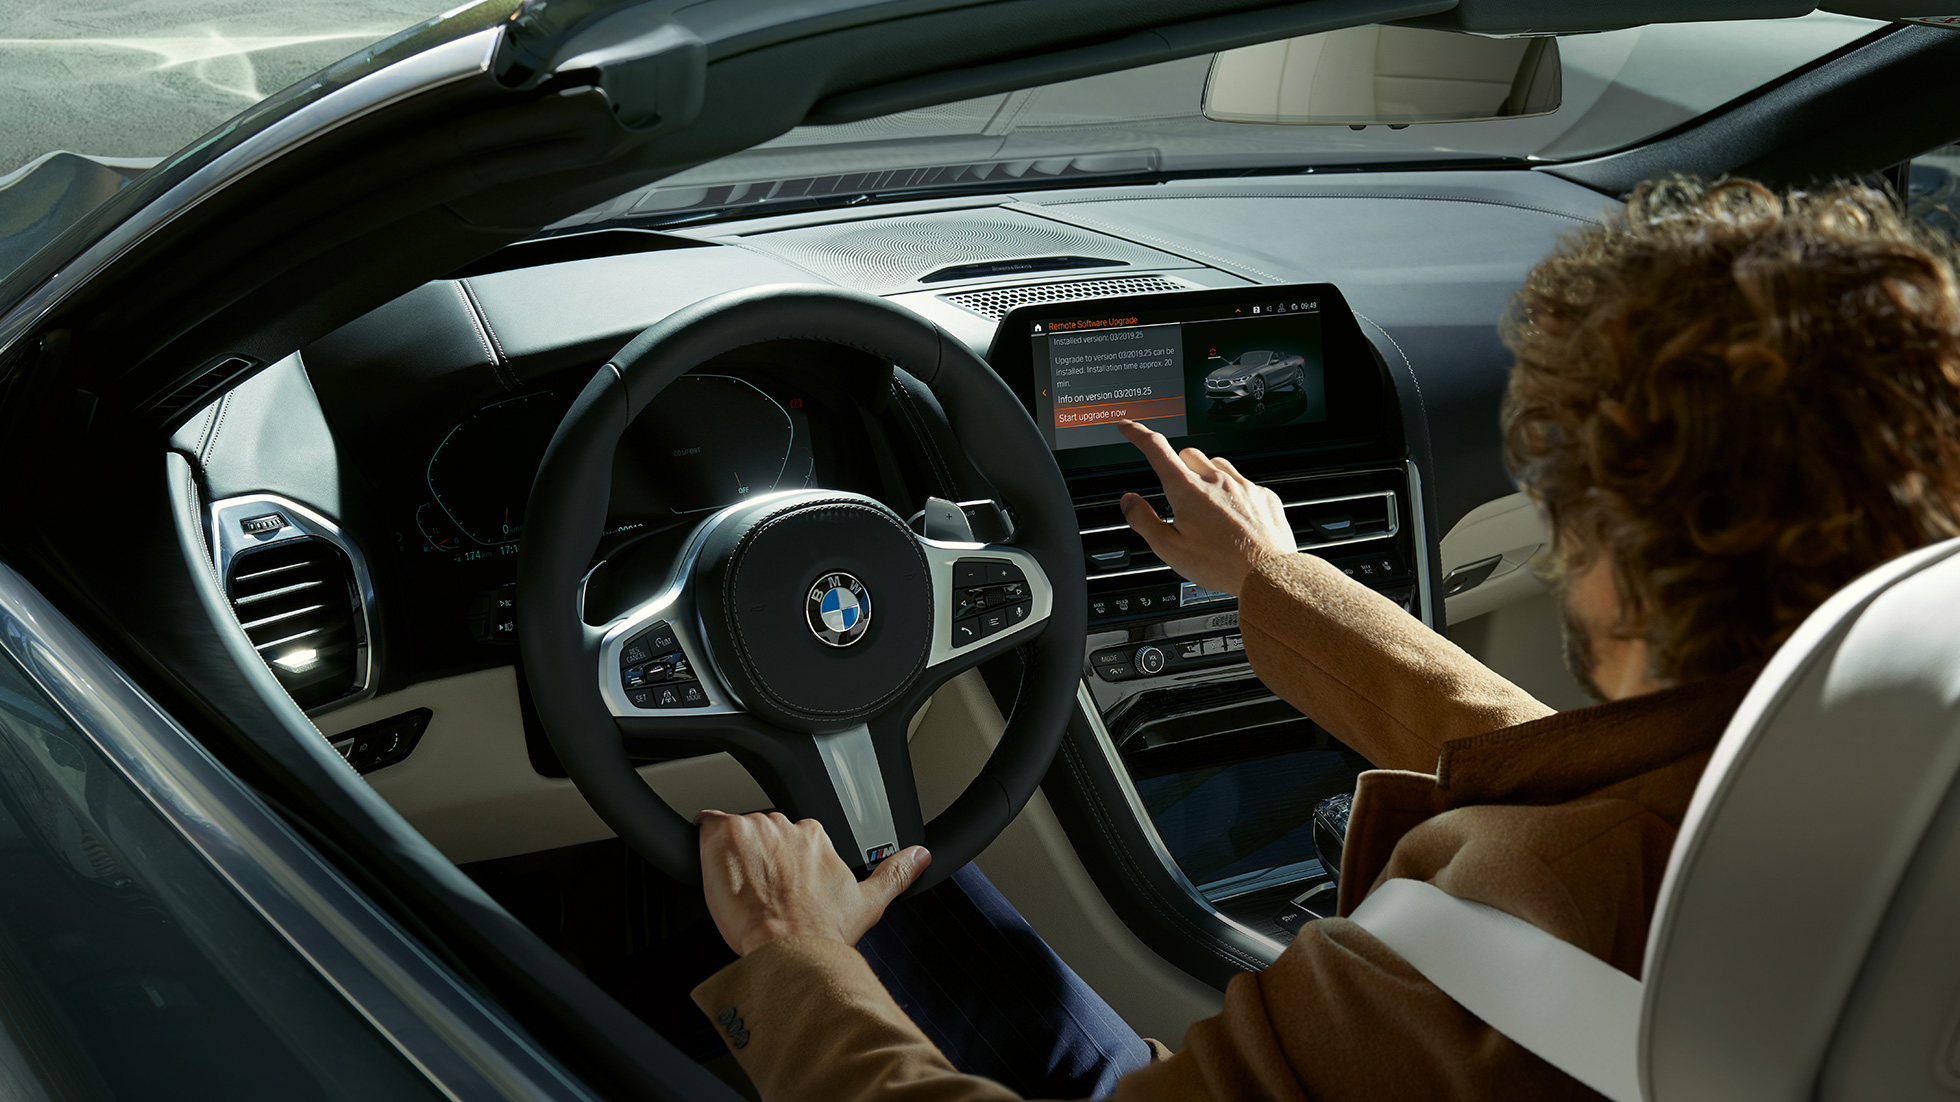 BMW M850i xDrive, driver operating BMW Live Cockpit Professional by touch control.